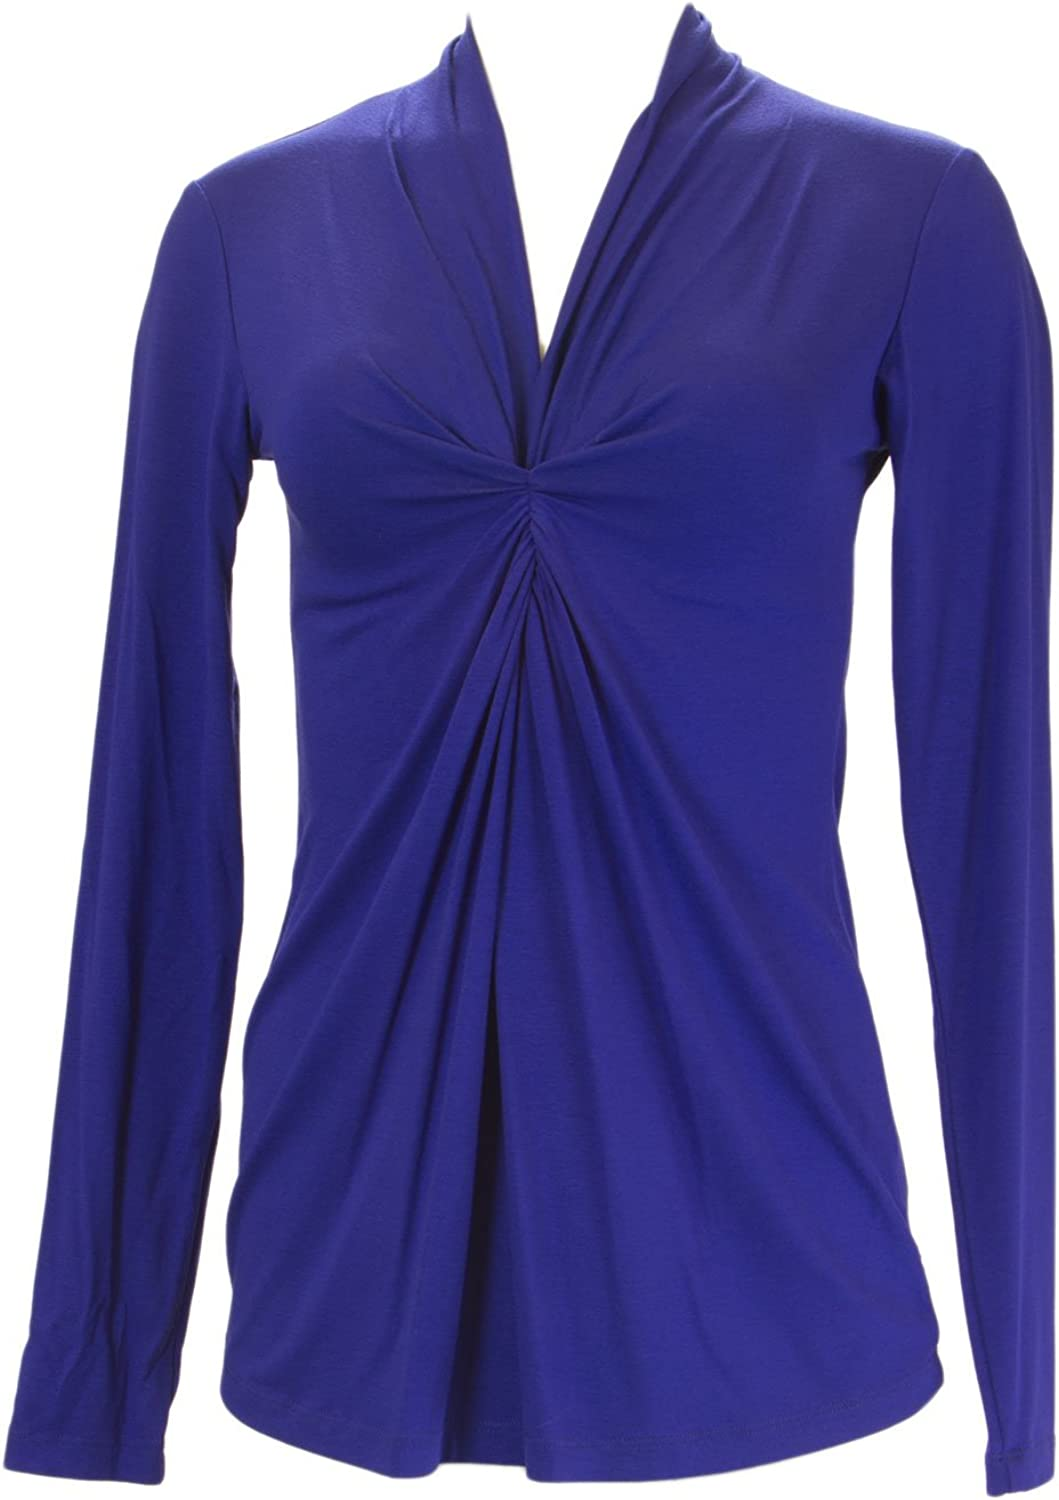 ANALILI Women's Front Twist Accent Long Sleeve Top 384IA10